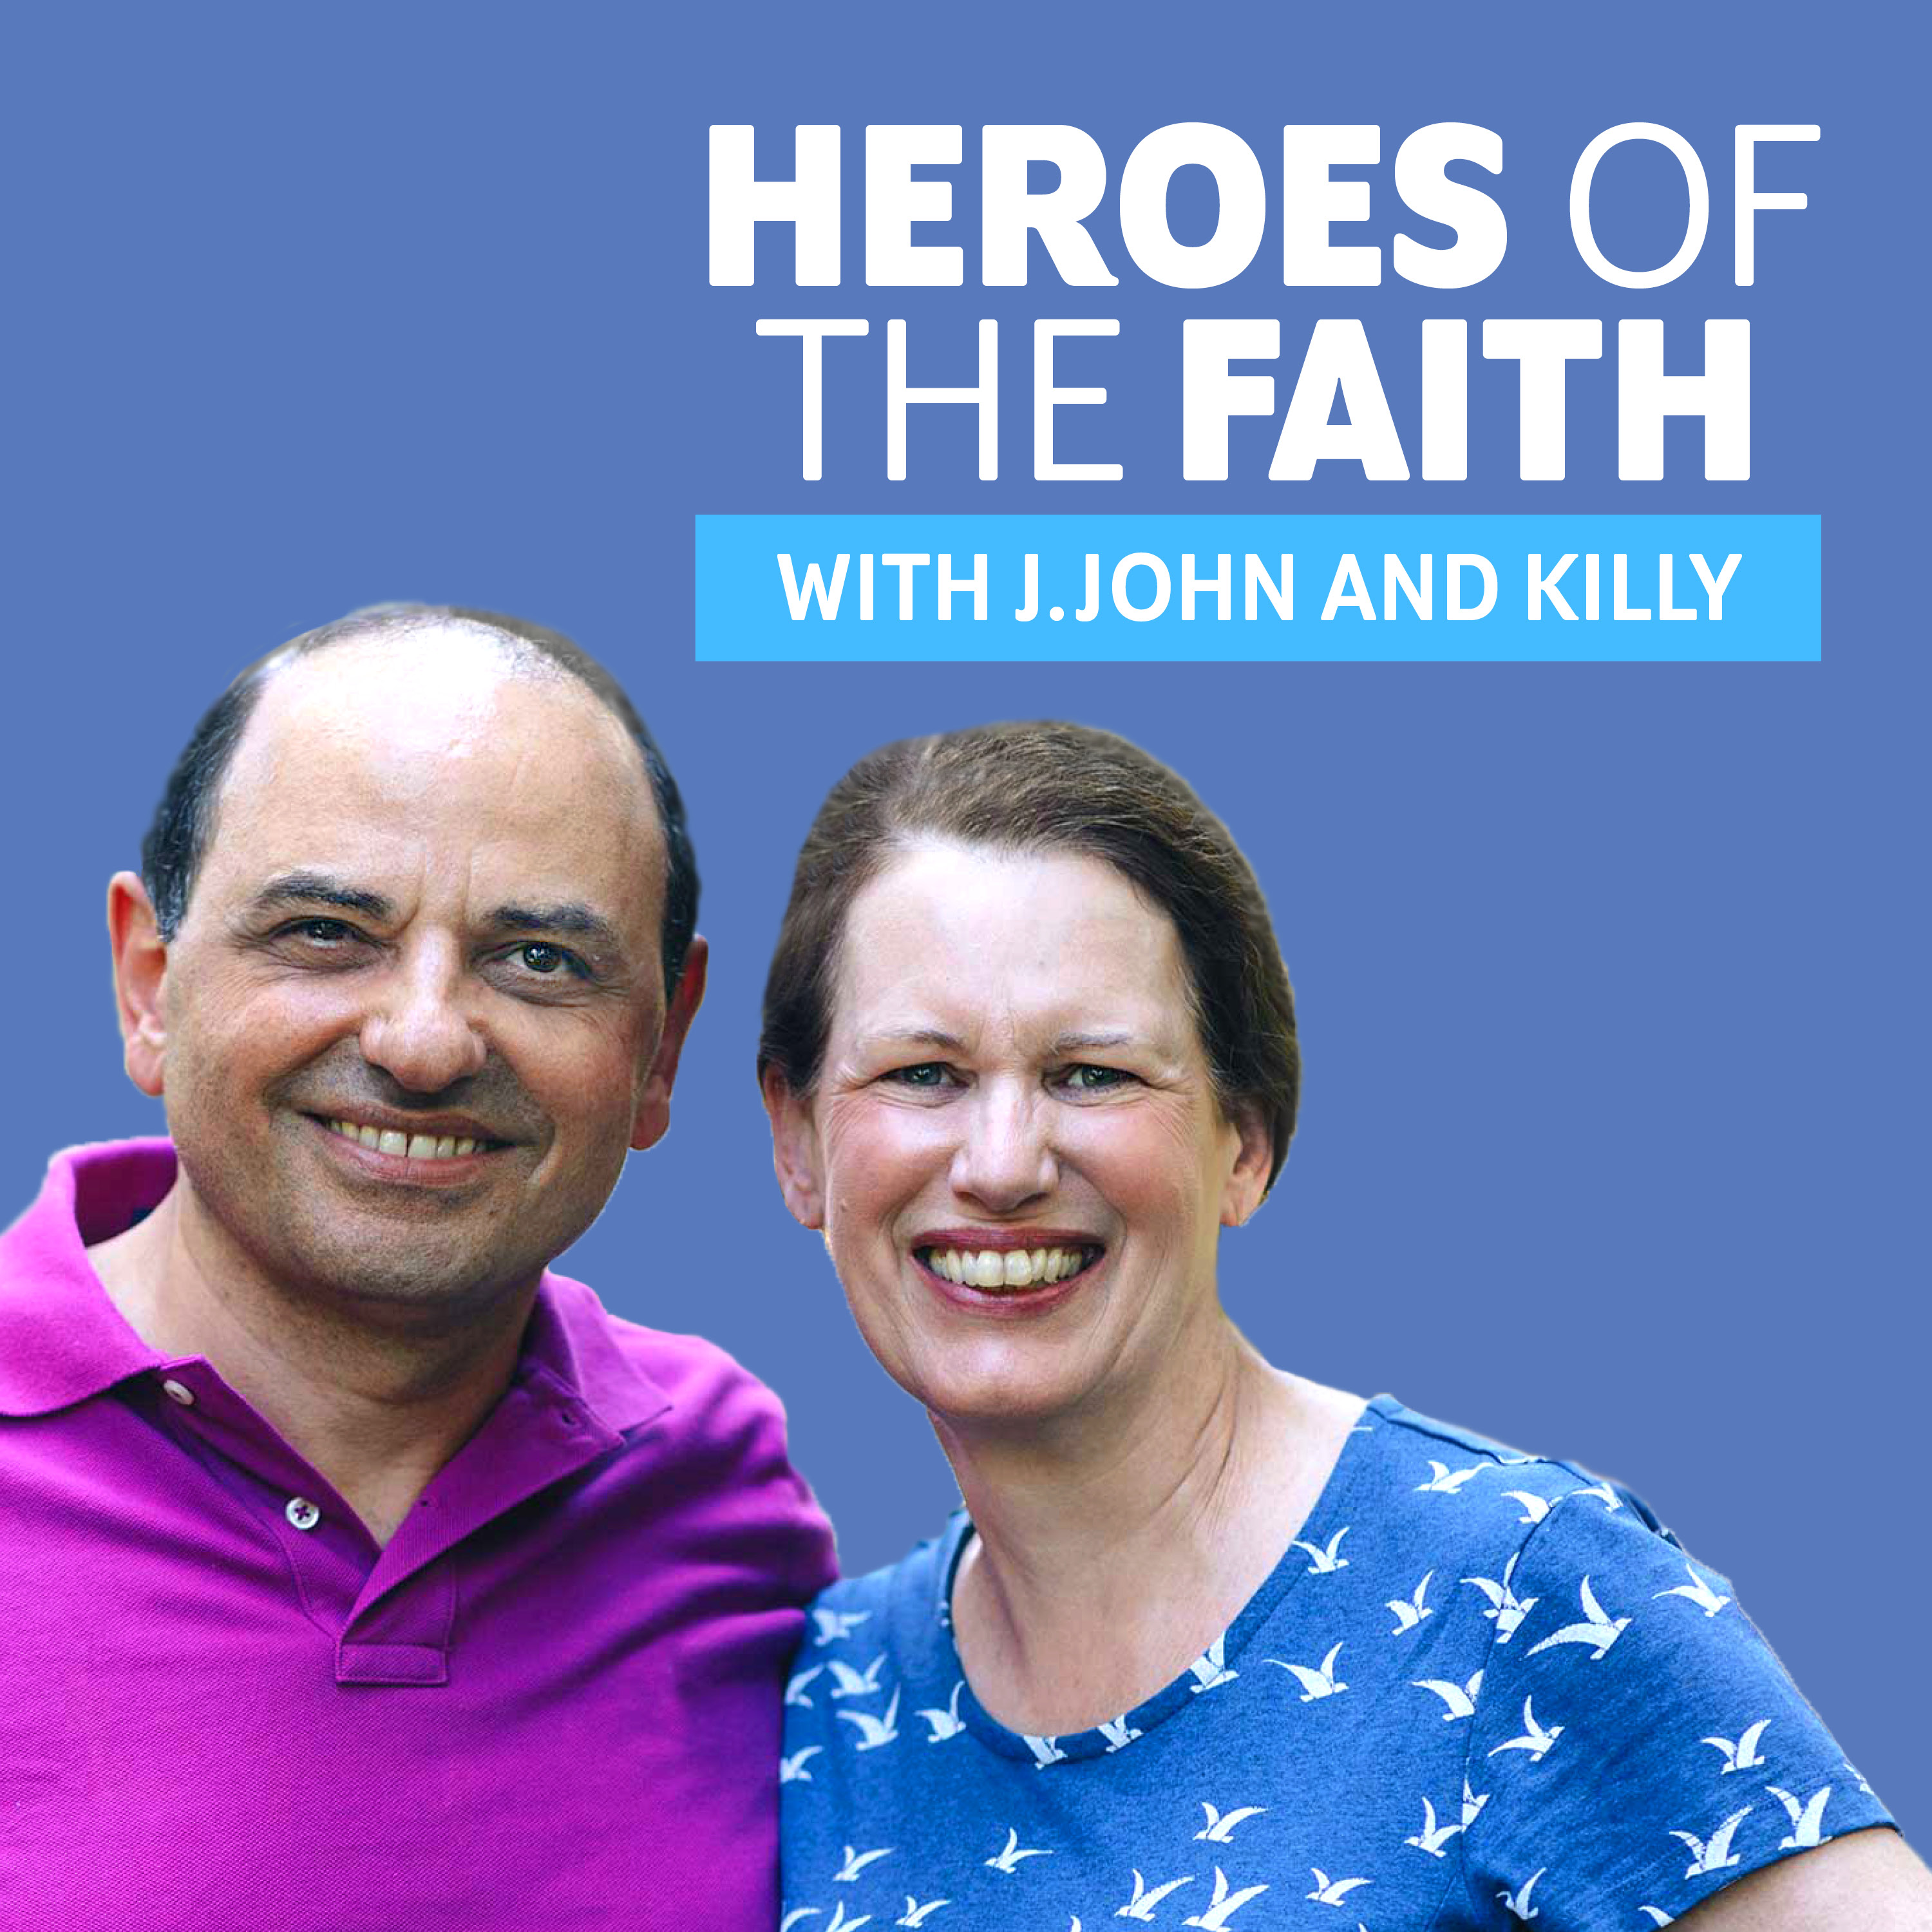 Artwork for podcast Heroes of the Faith: with J.John and Killy